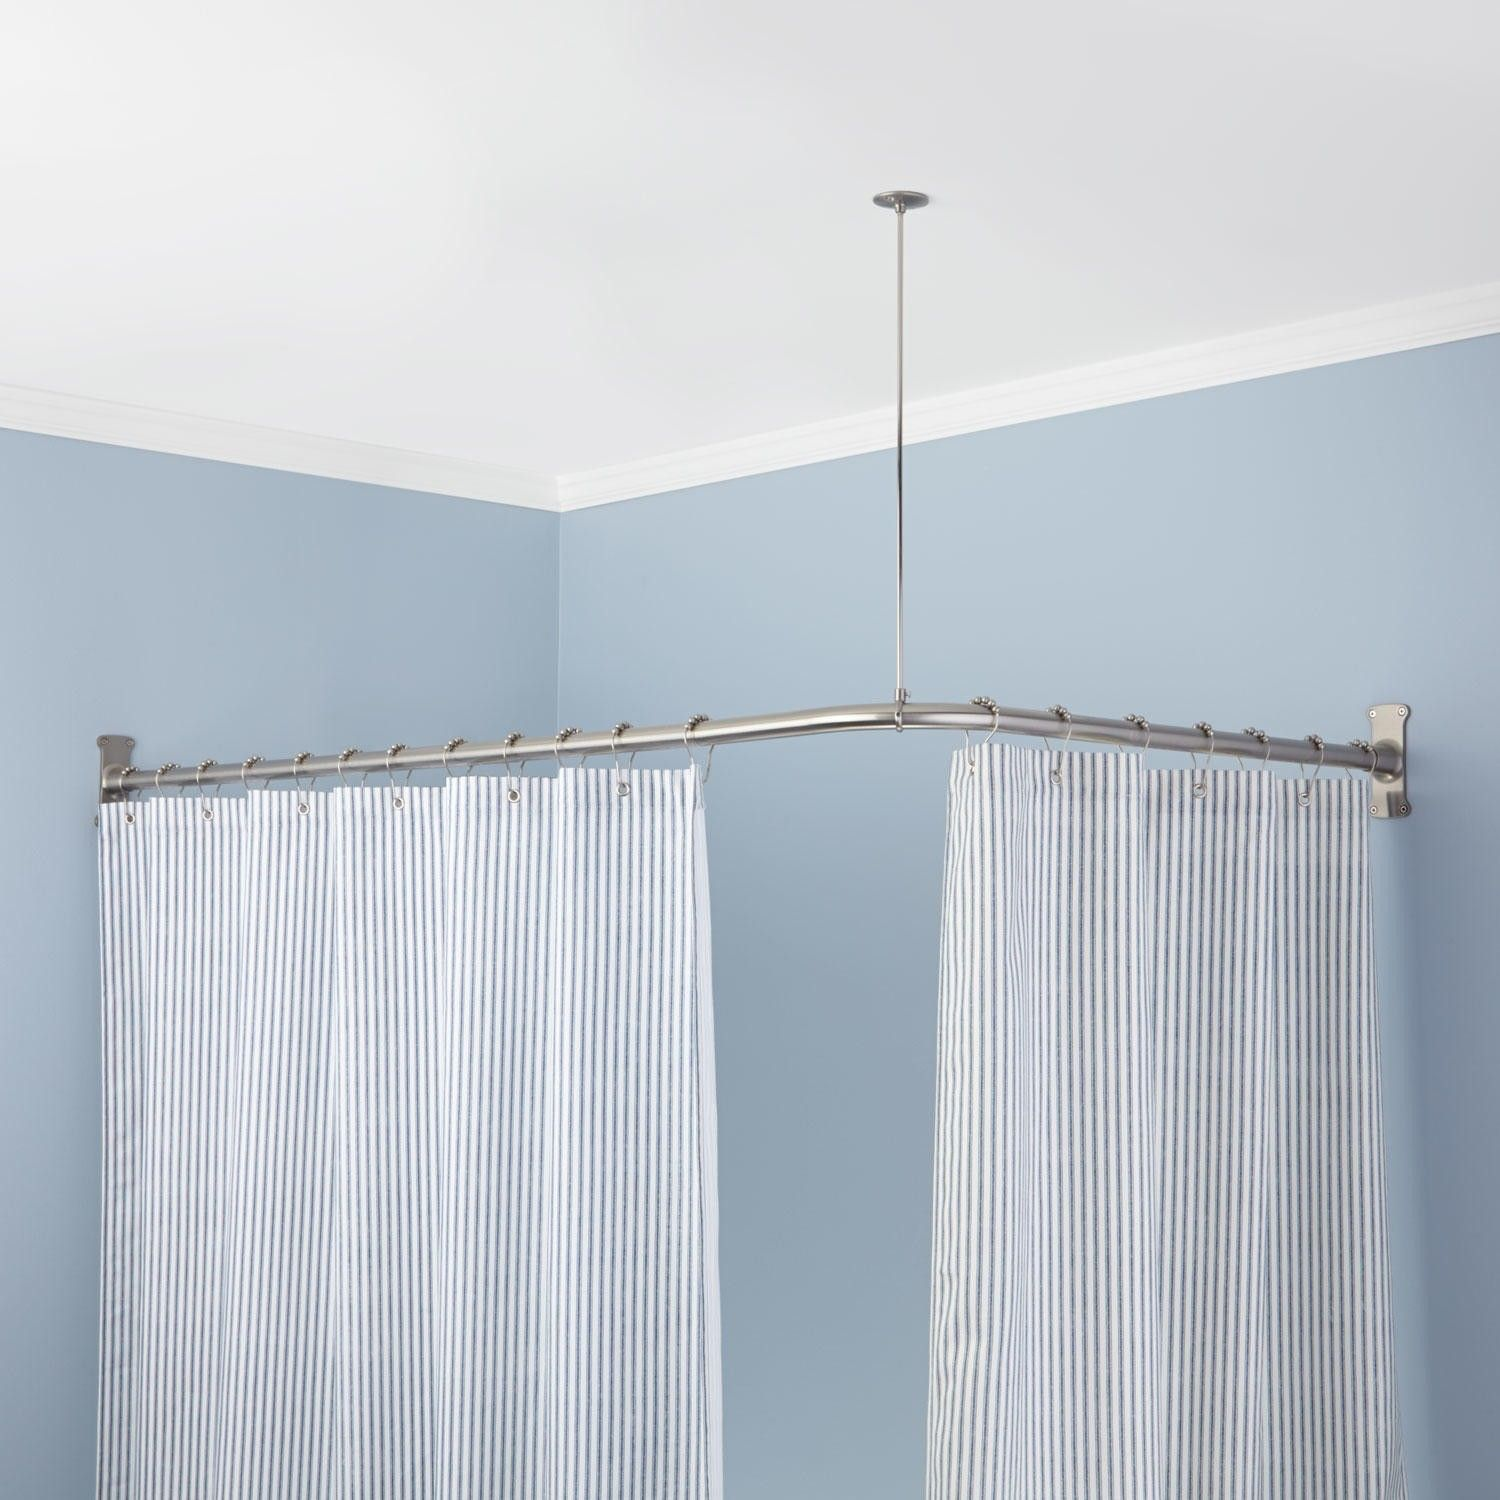 Telescopic L-shaped Shower Curtain Rod Corner Solid Brass Shower Curtain Rod Ag Inn Place Bathrooms